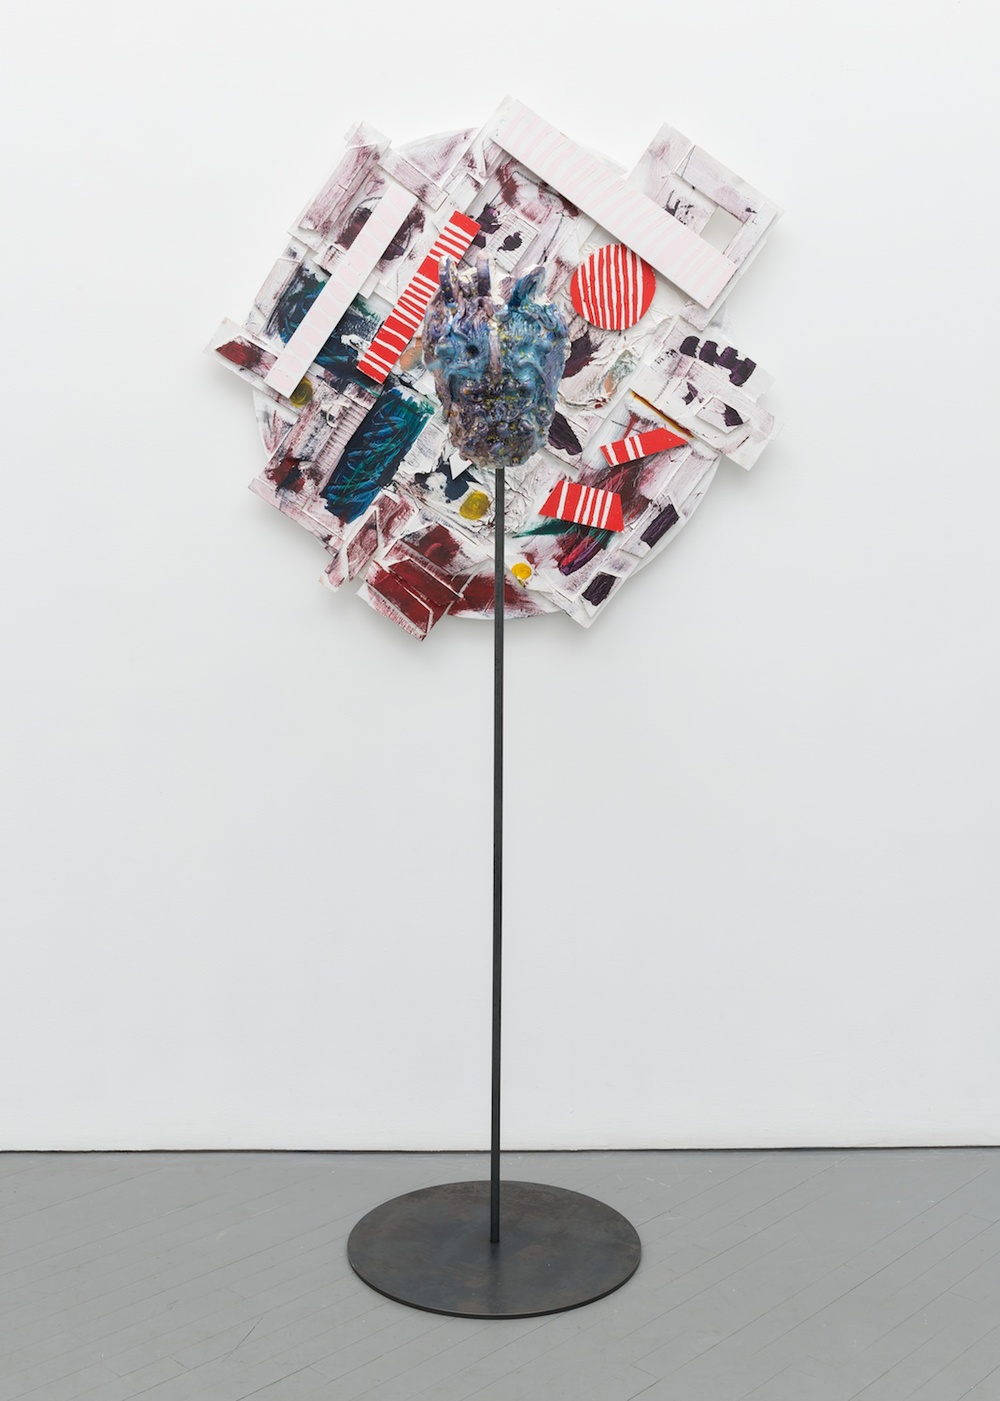 "William J. O'Brien Untitled 2013/2014 Mixed media on wood; Glazed ceramic on steel armature 35"" x 42"" (painting); 65 3/4"" x 20"" x 20"" (ceramic + stand) WOB909/WOB938"